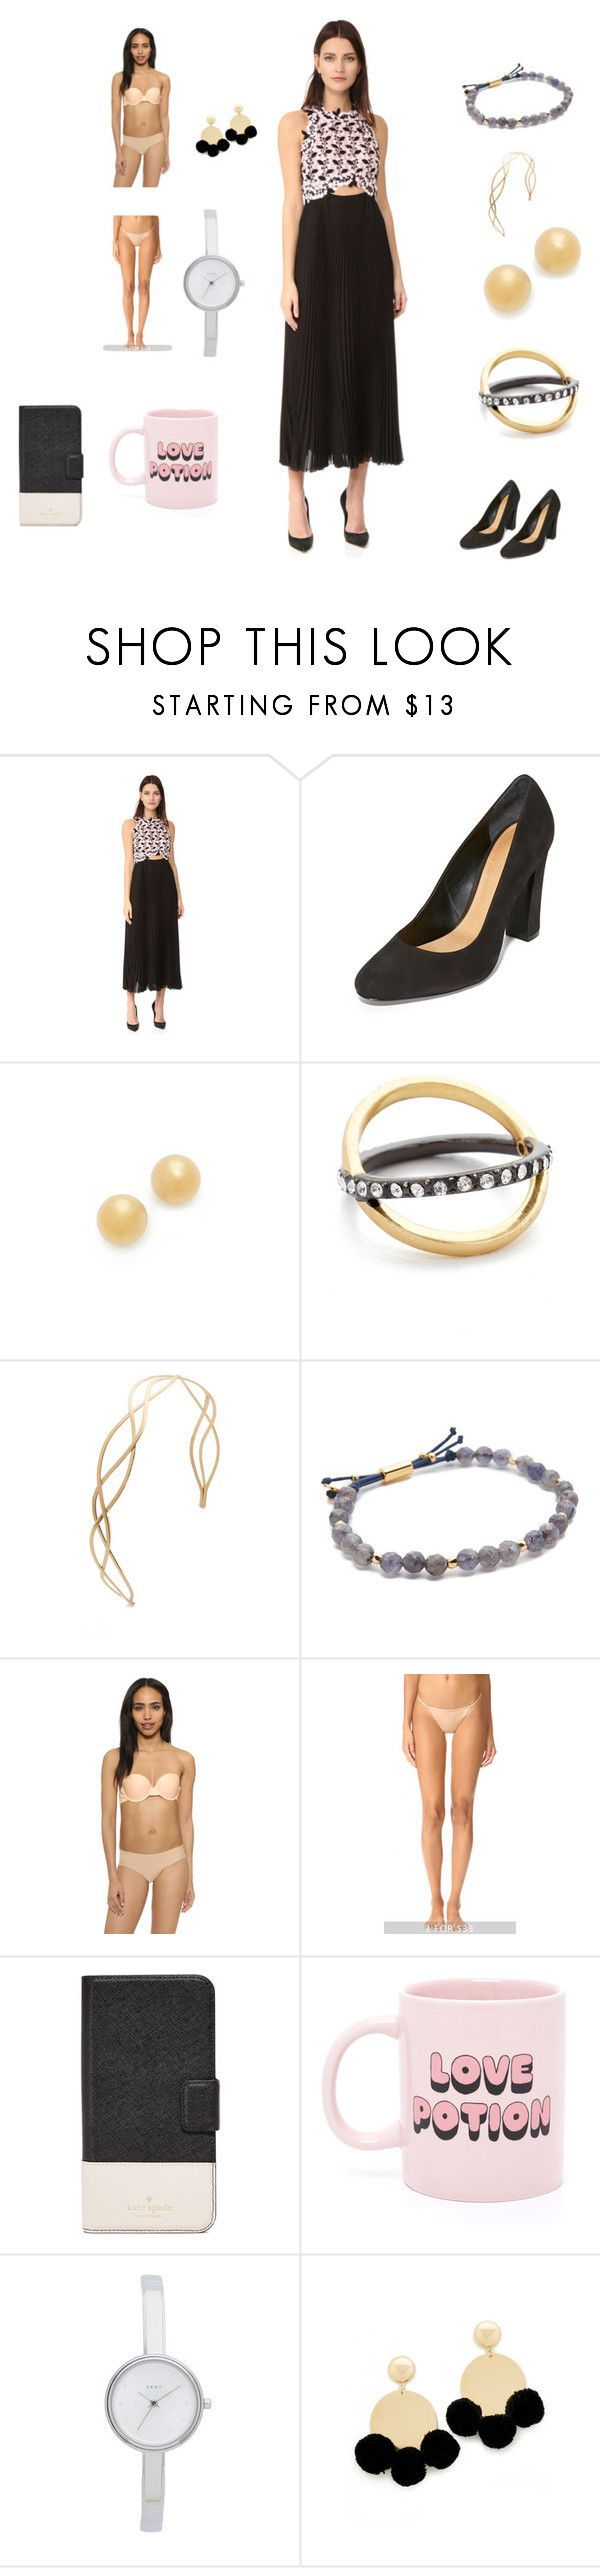 """""""Black and White Fashion Sale"""" by camry-brynn ❤ liked on Polyvore featuring Giambattista Valli, Schutz, Kate Spade, Madewell, Gorjana, Calvin Klein Underwear, ban.do, DKNY and Elizabeth and James"""